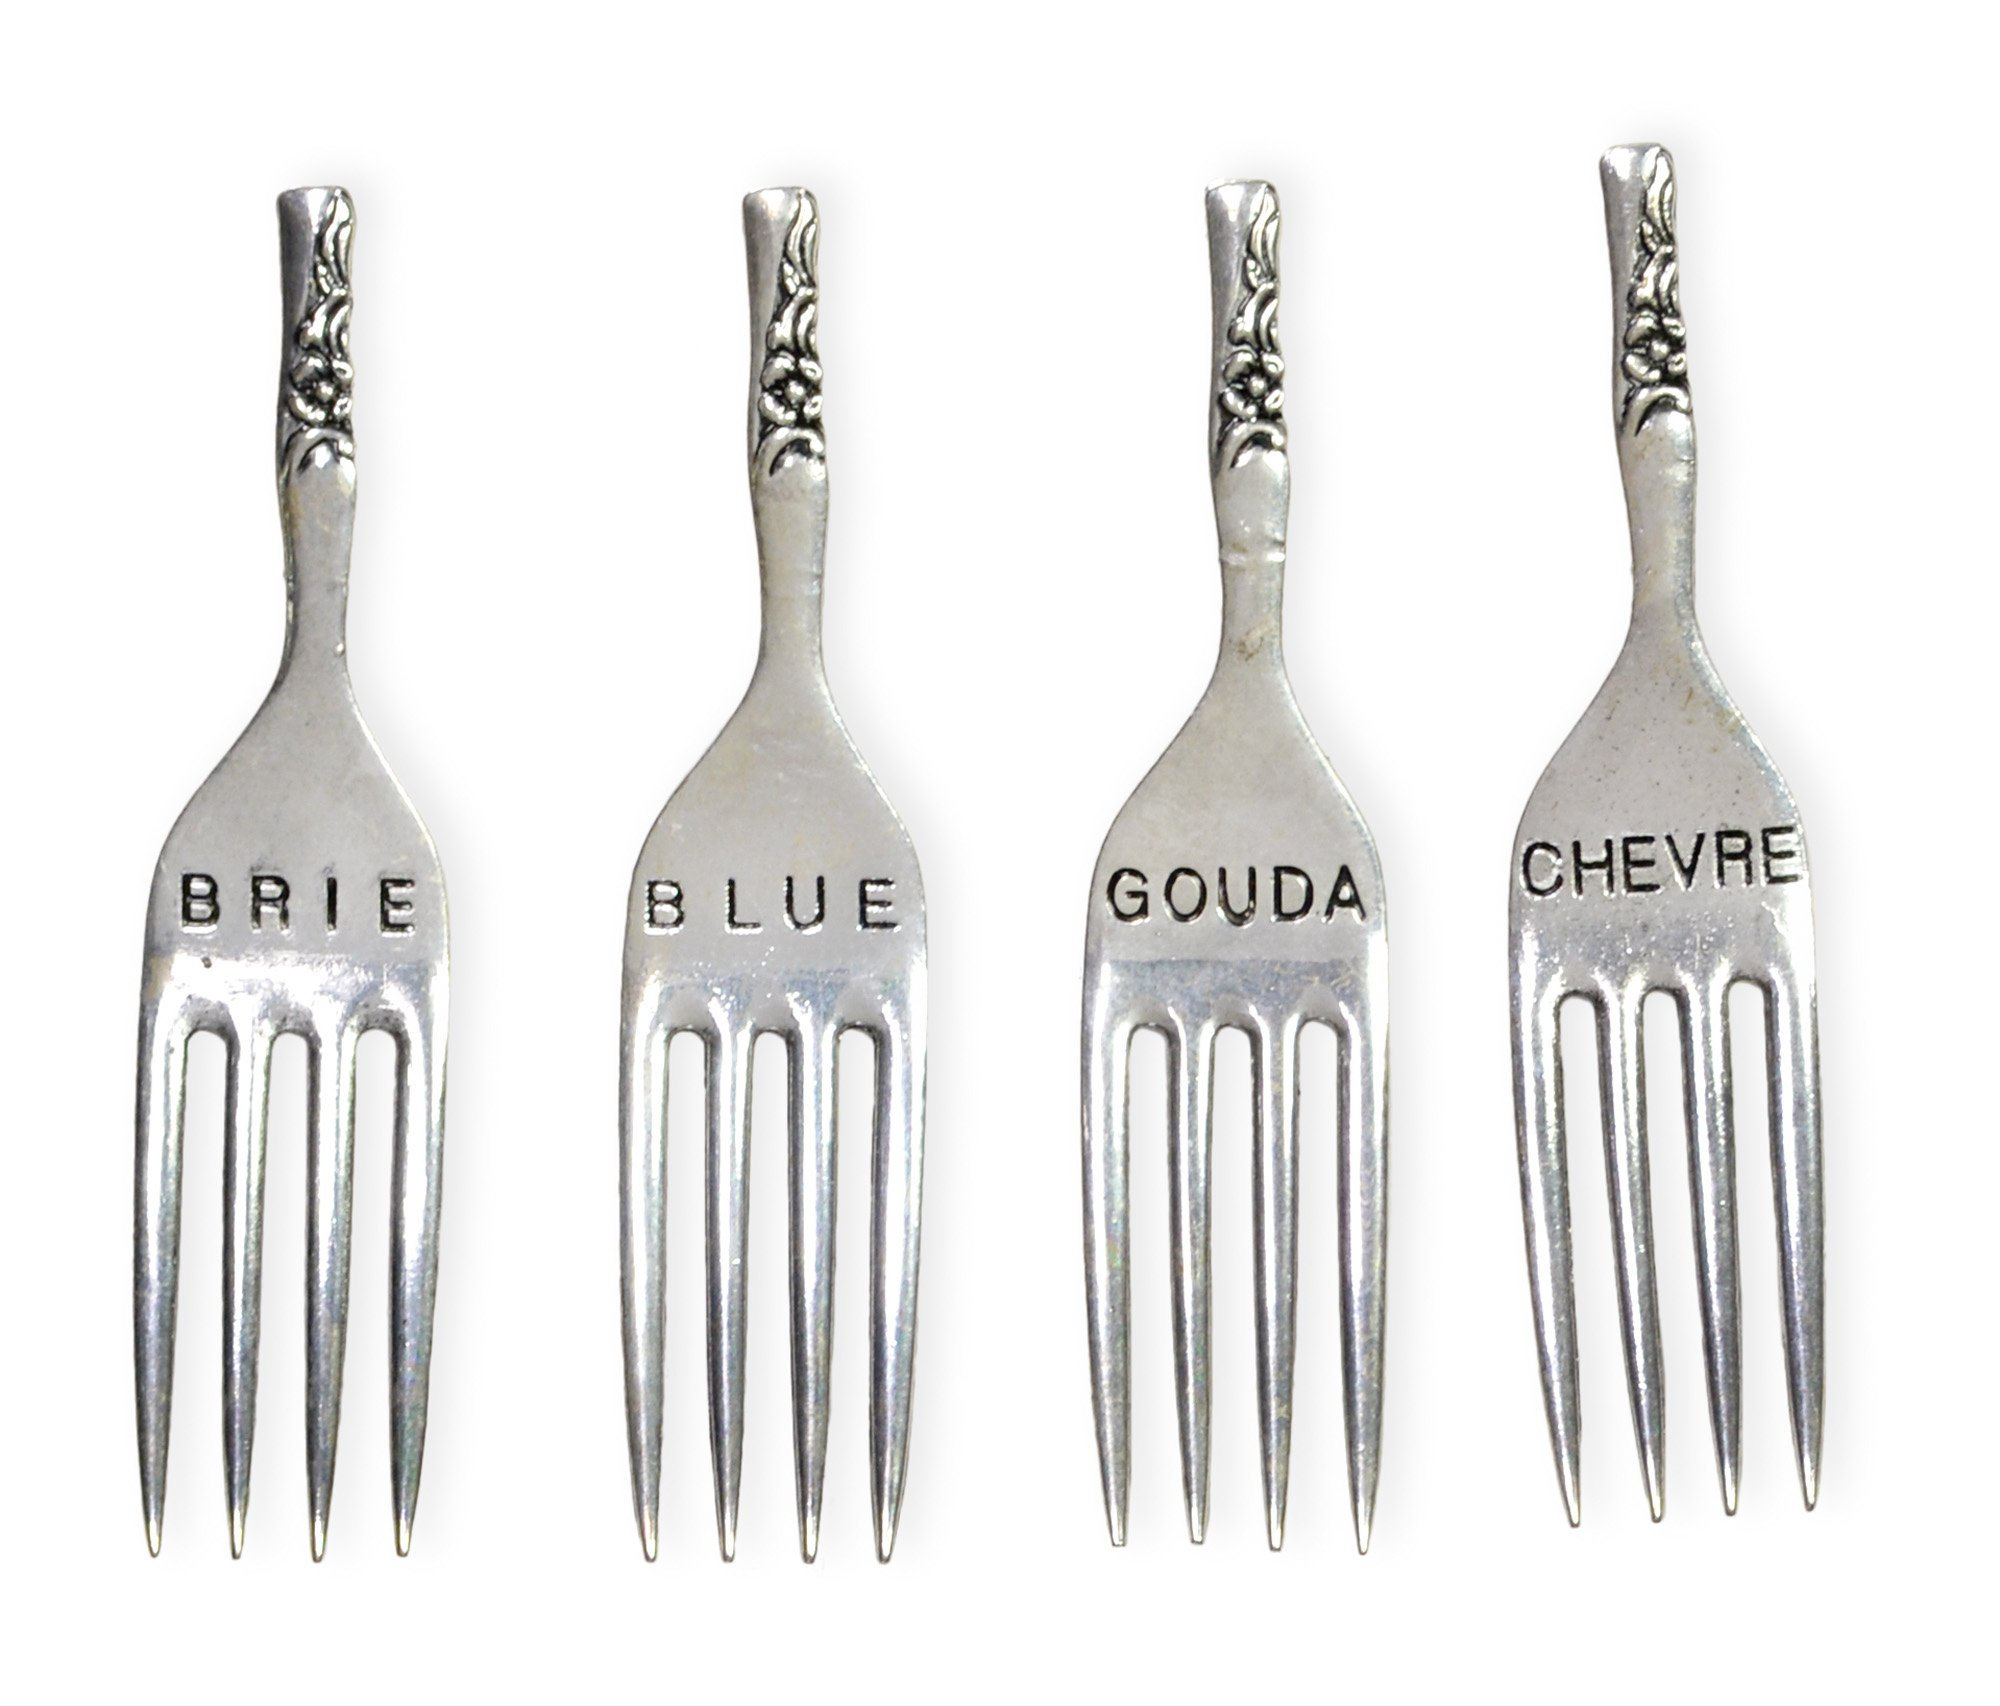 Celebrate the Home Cheese Marker Fromage Forks, Brie, Blue, Gouda, Chevre, Set of 4